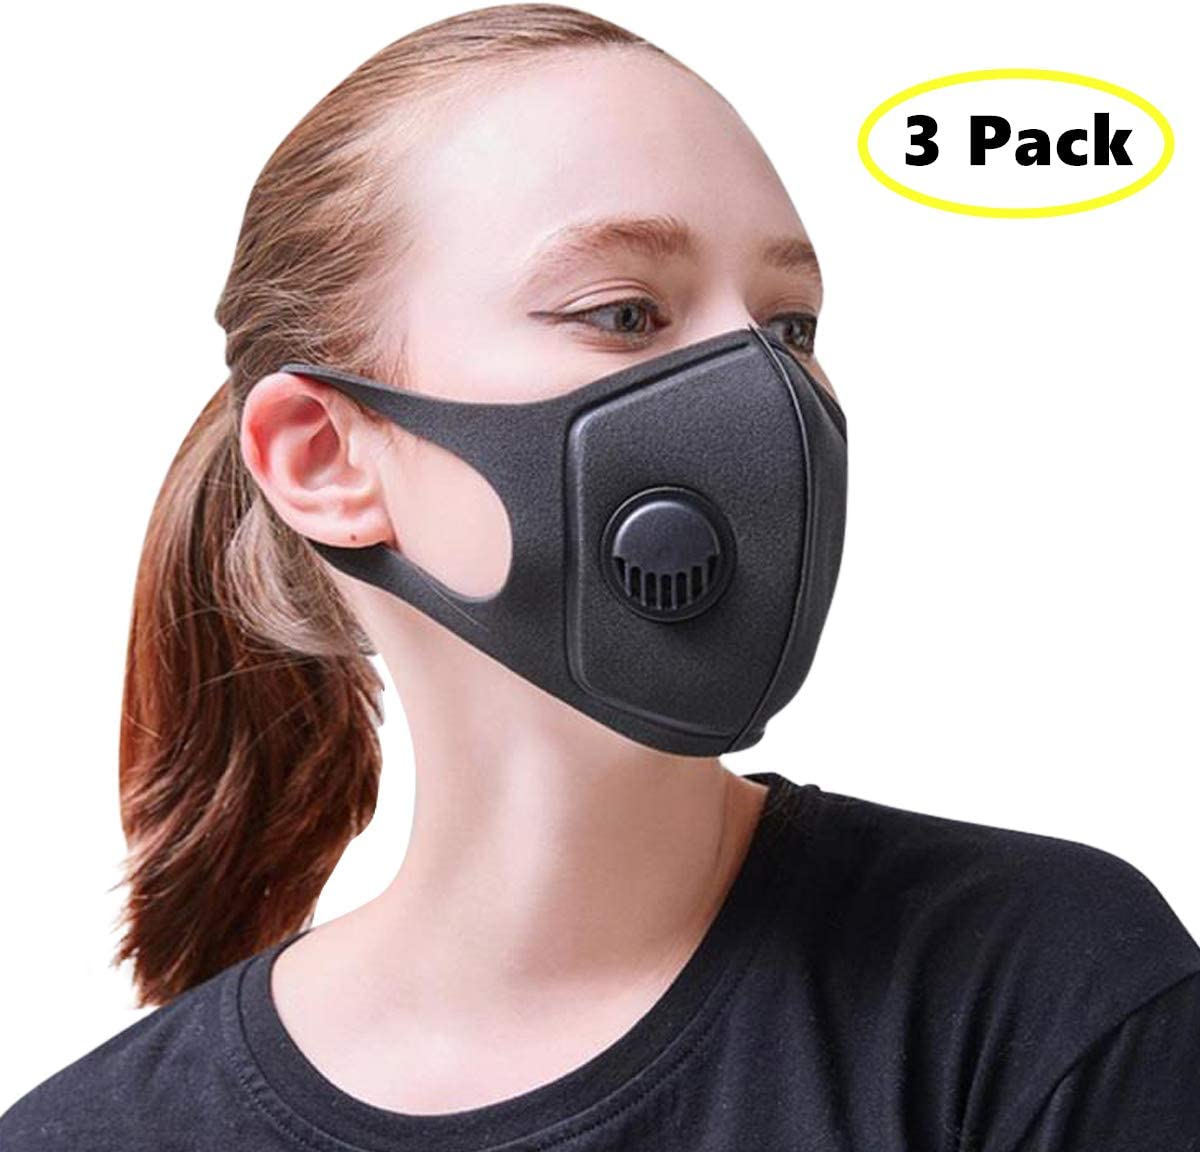 Face Best com Respirator Amazon With Pollution Mask Pack 3 Air